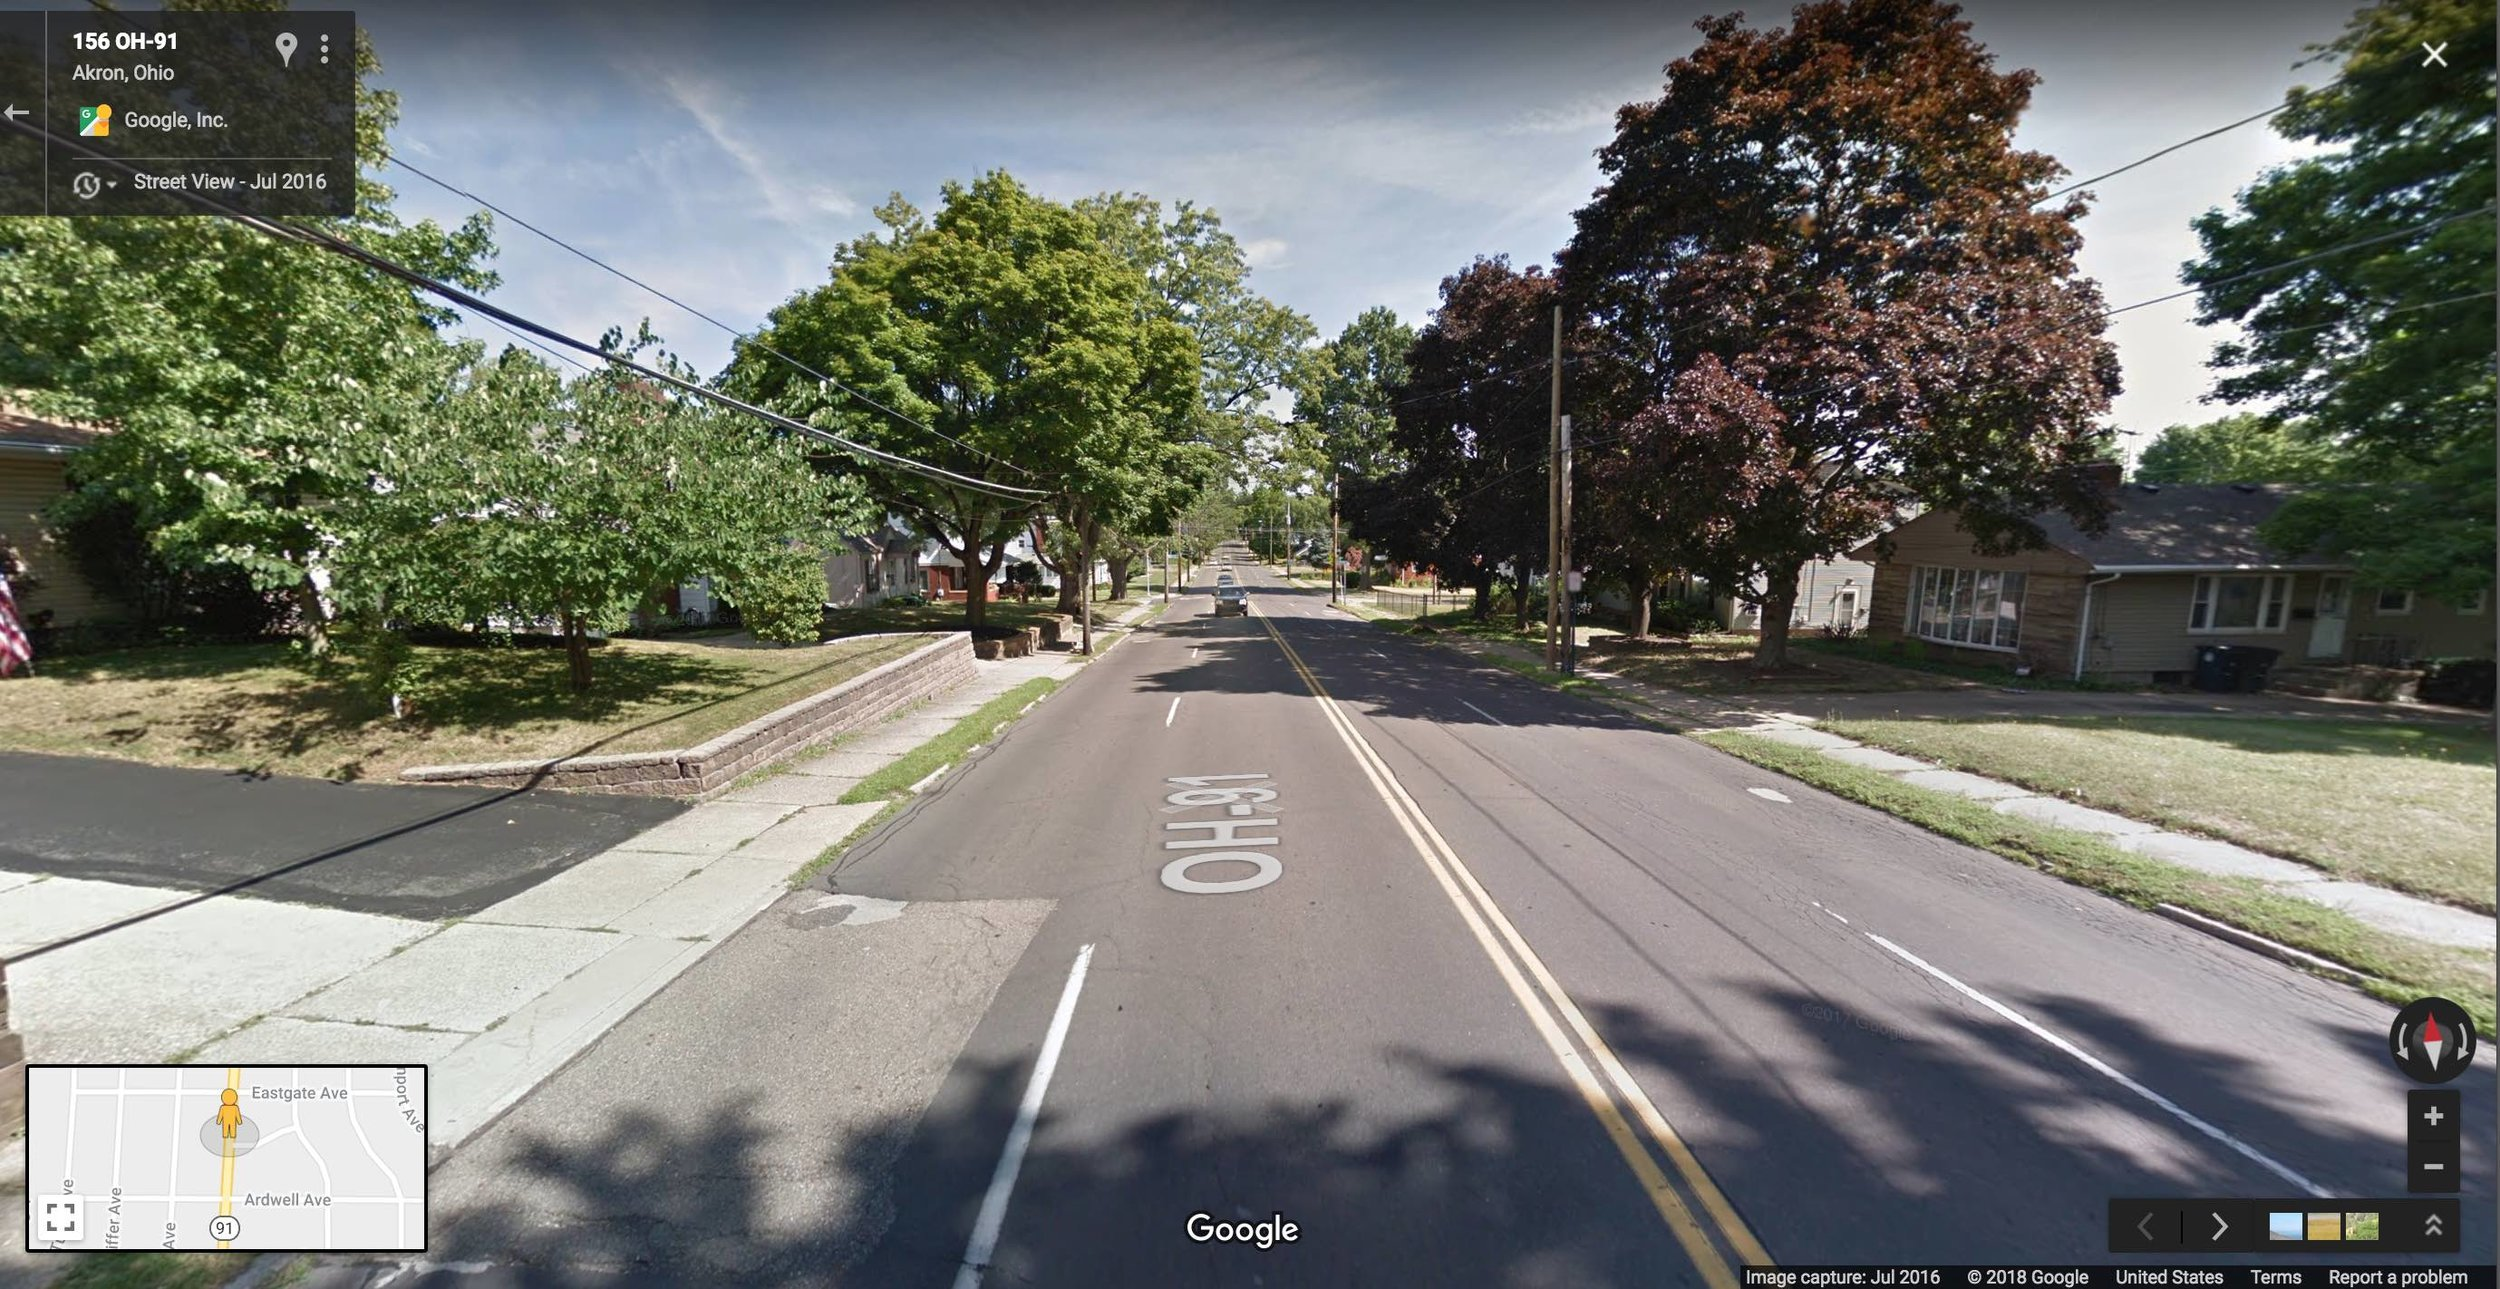 A wide open road like this stretch of Canton Road in Akron has a  design speed  that invites fast driving, even though the residential surroundings mean that people on foot, including children, might be present. (Source: Google)